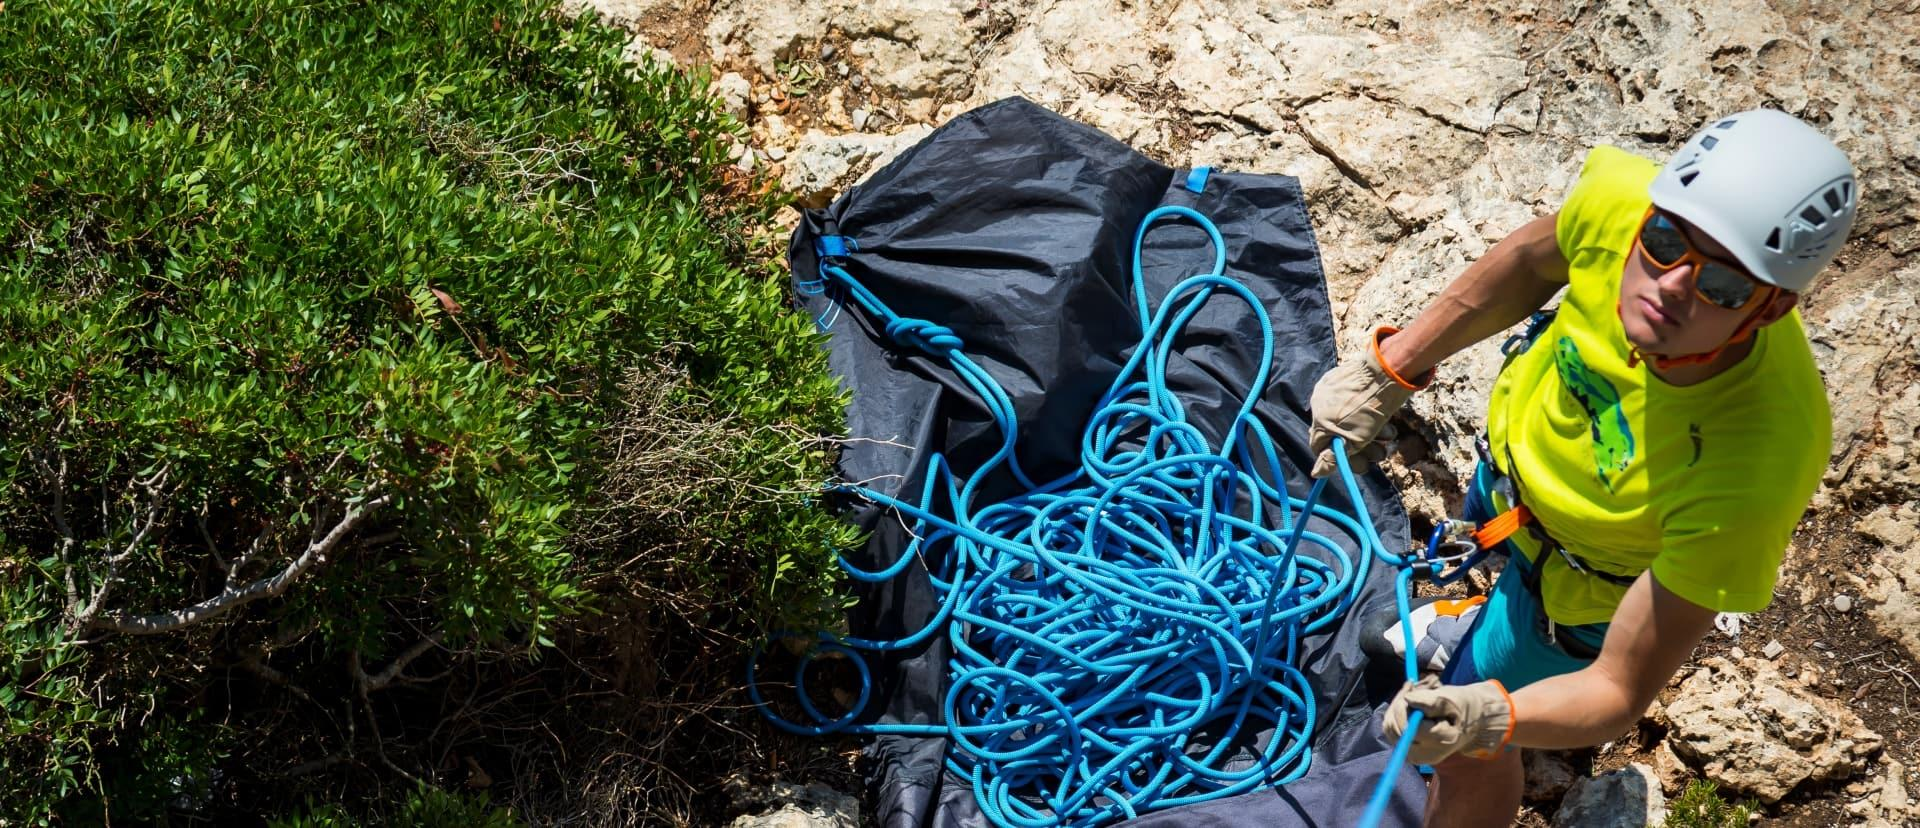 How to choose a belay device?